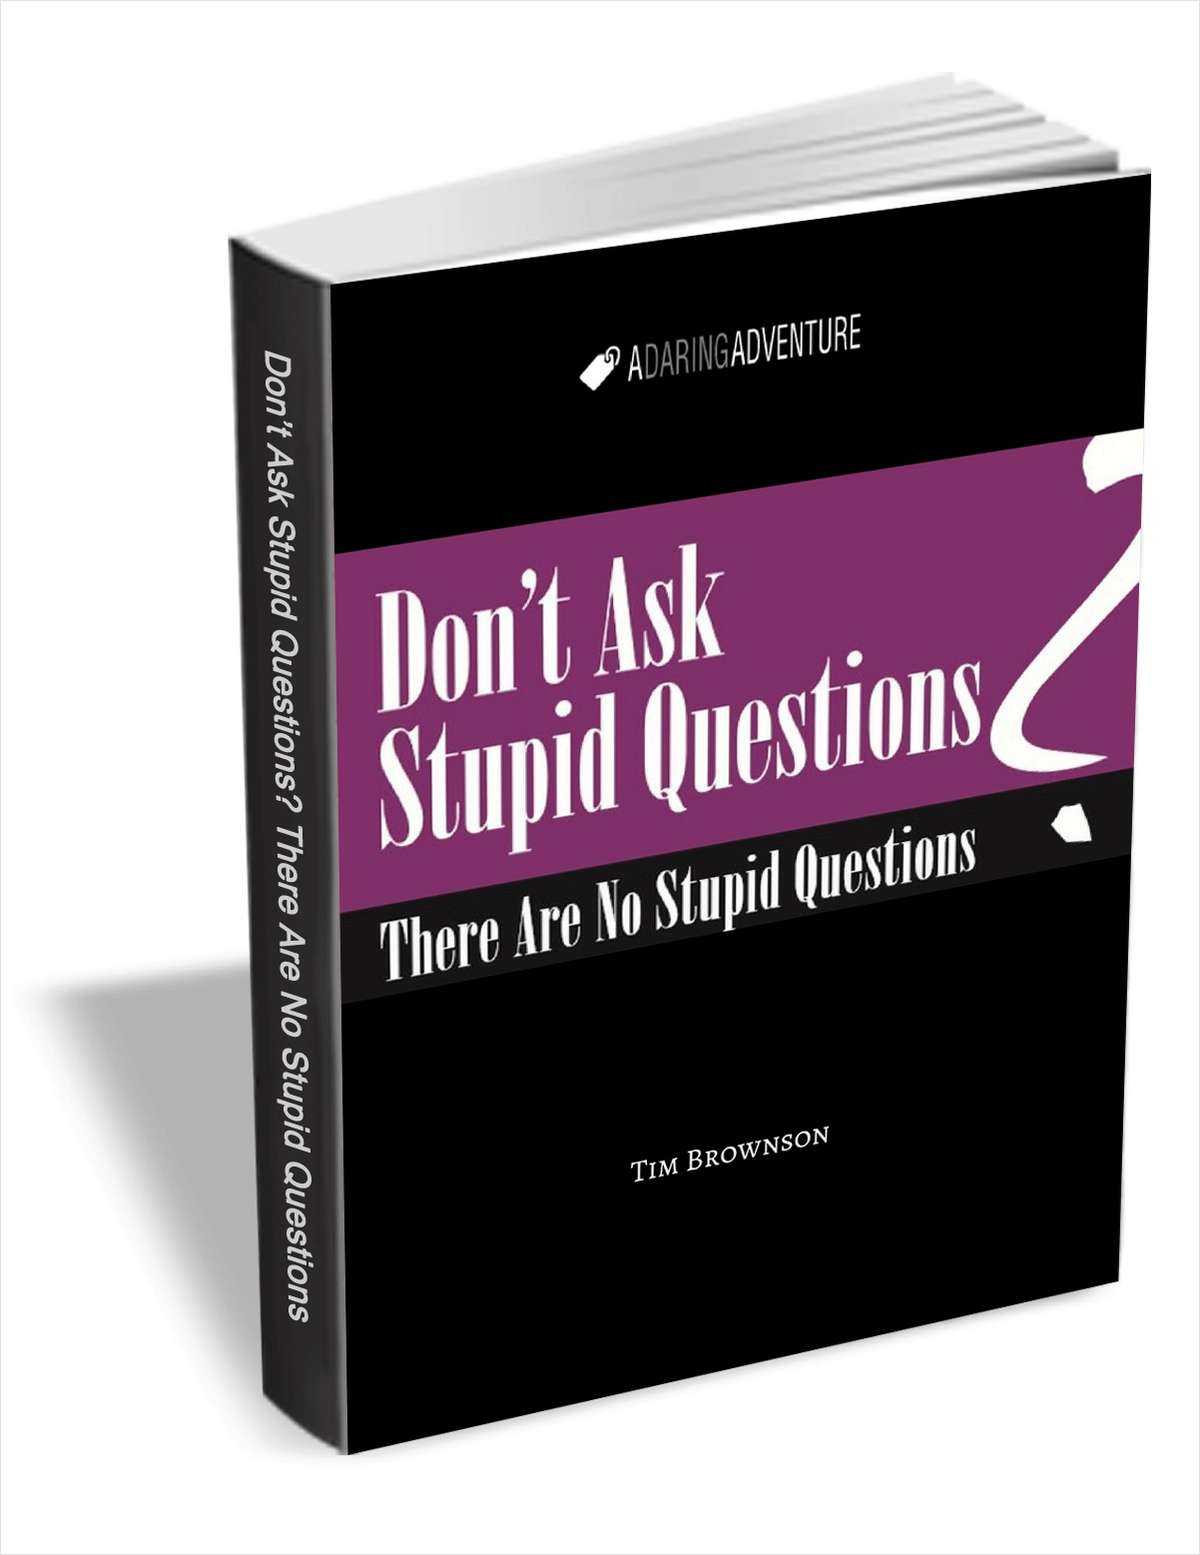 Don't Ask Stupid Questions - There Are No Stupid Questions